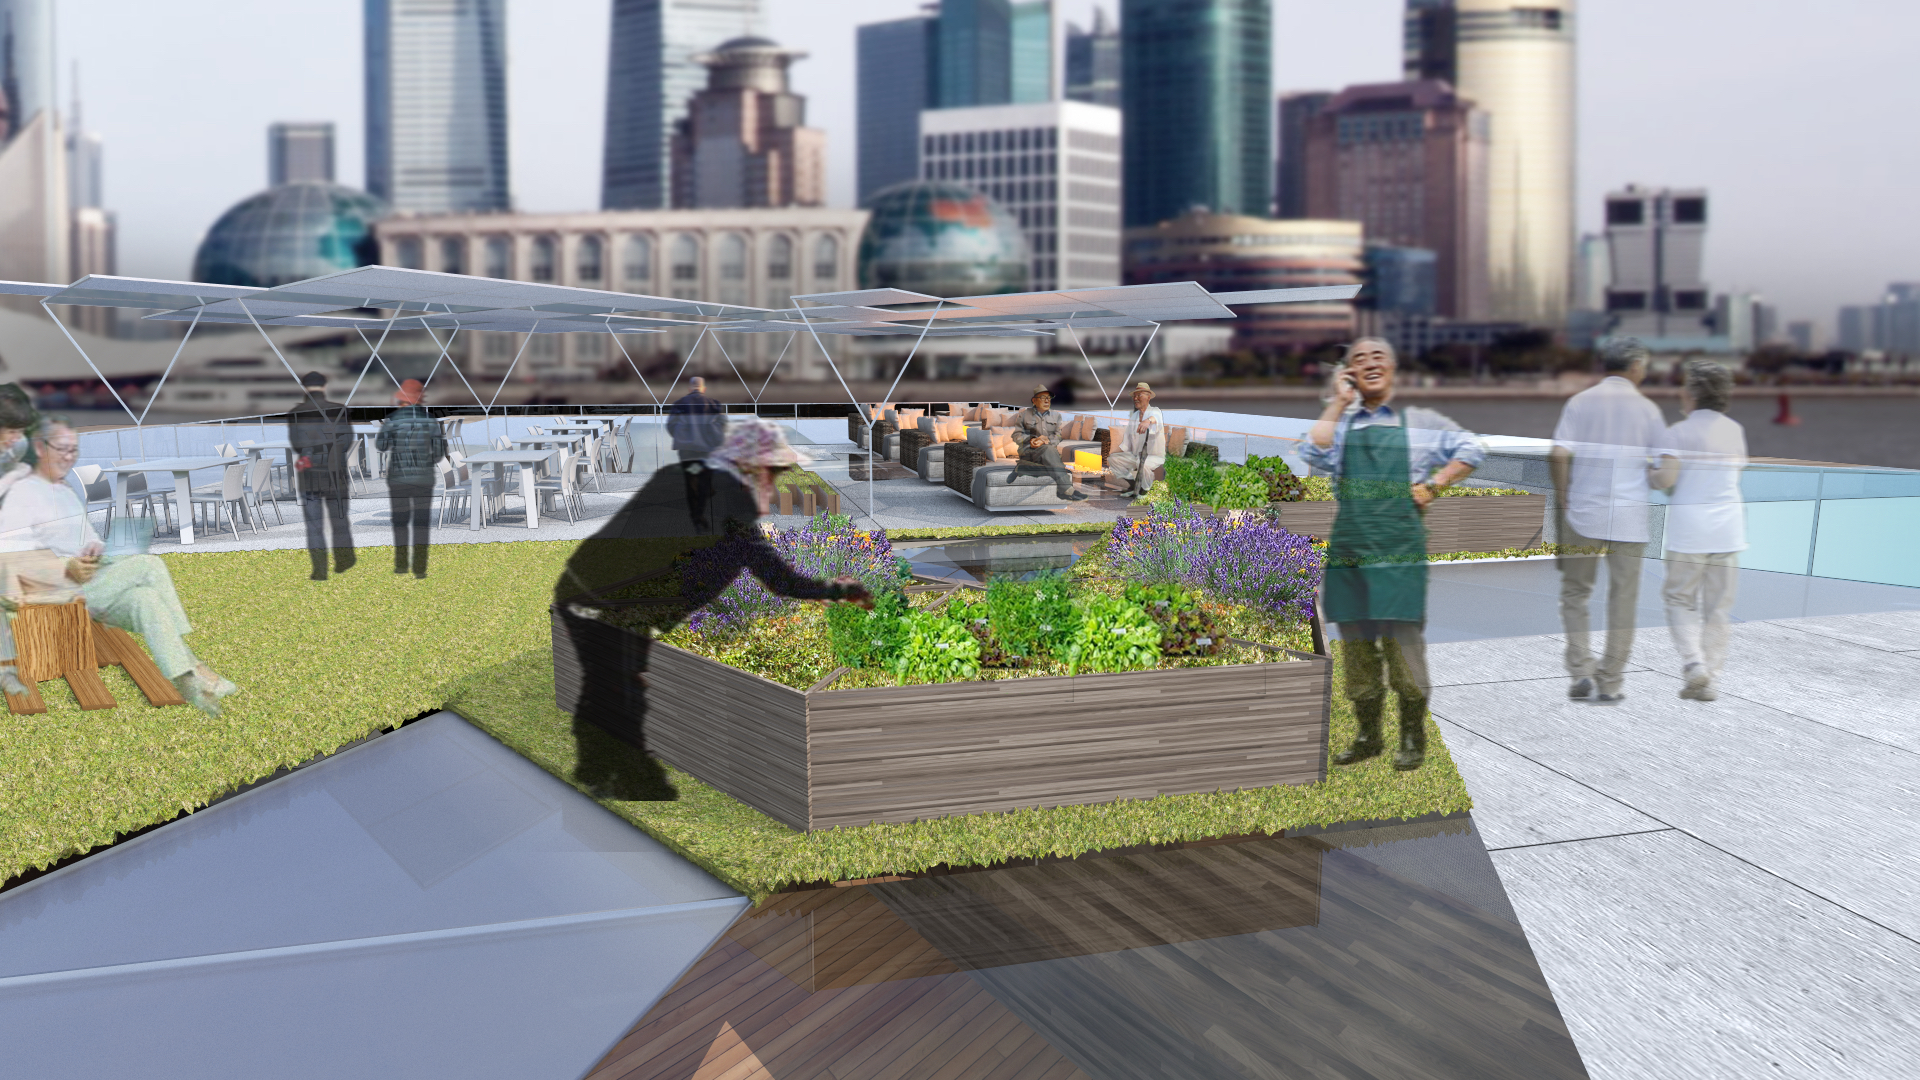 In the morning, elders could use the community gardening space to plant veggies or they could rest in lounge to enjoy the view.